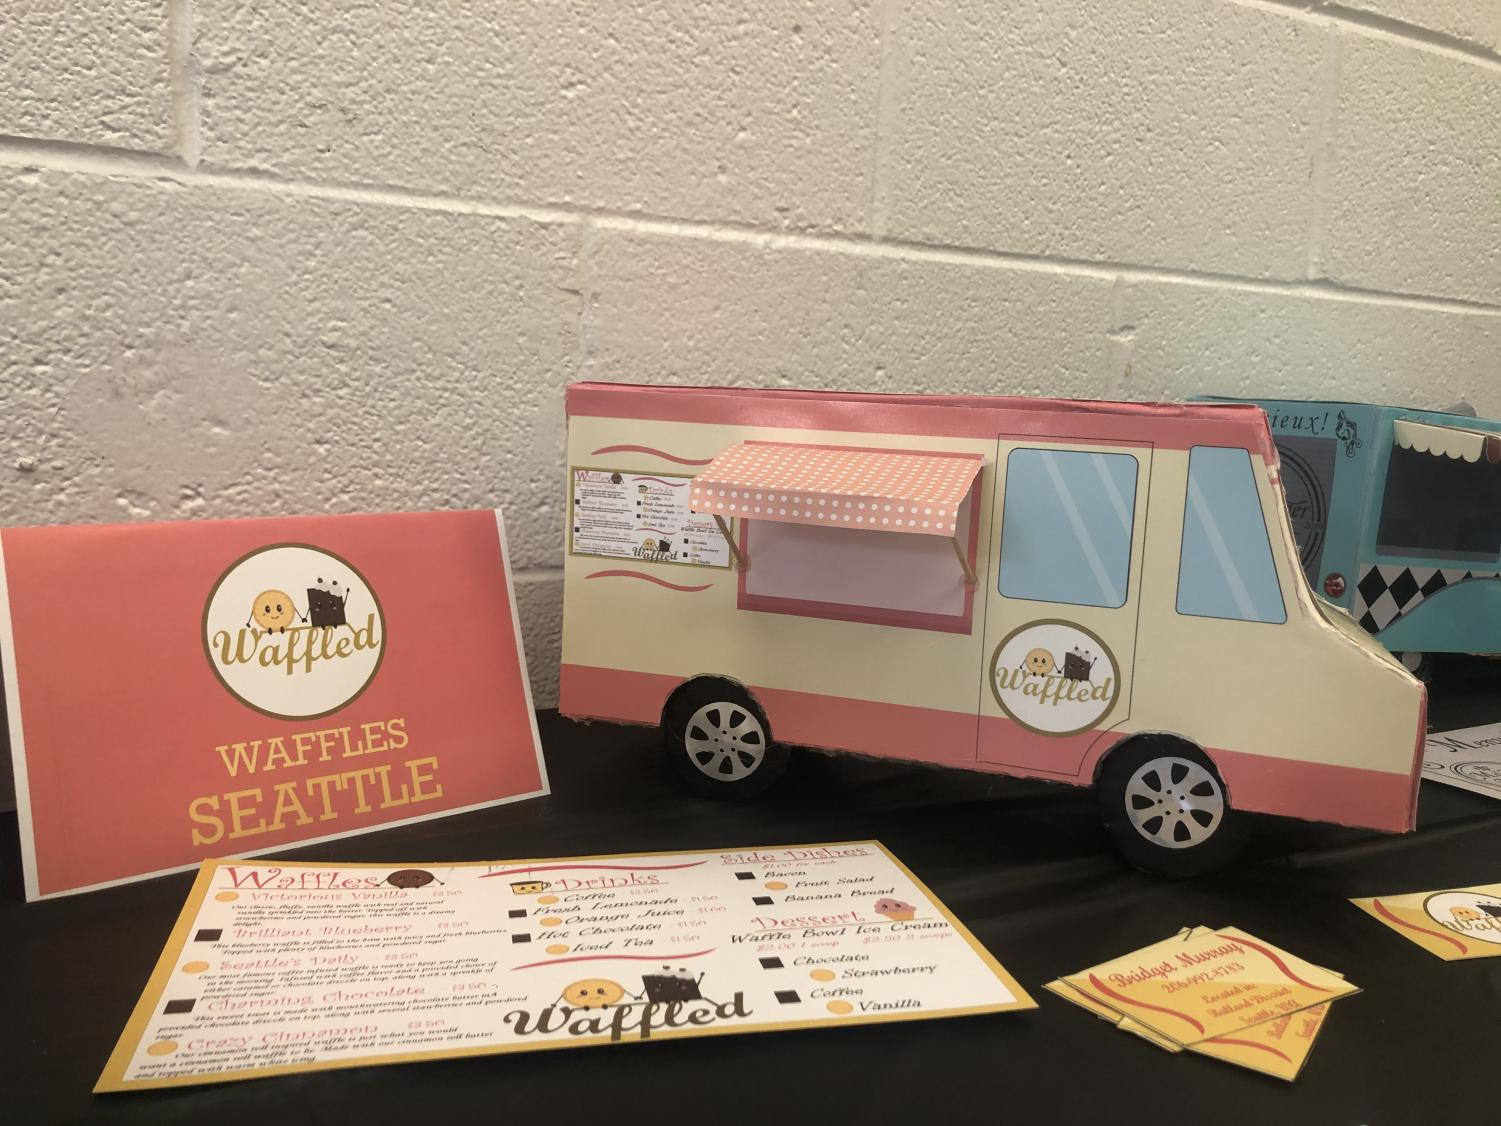 Students created and designed their own Food Truck exterior and menu. This food truck sold waffles in Seattle.